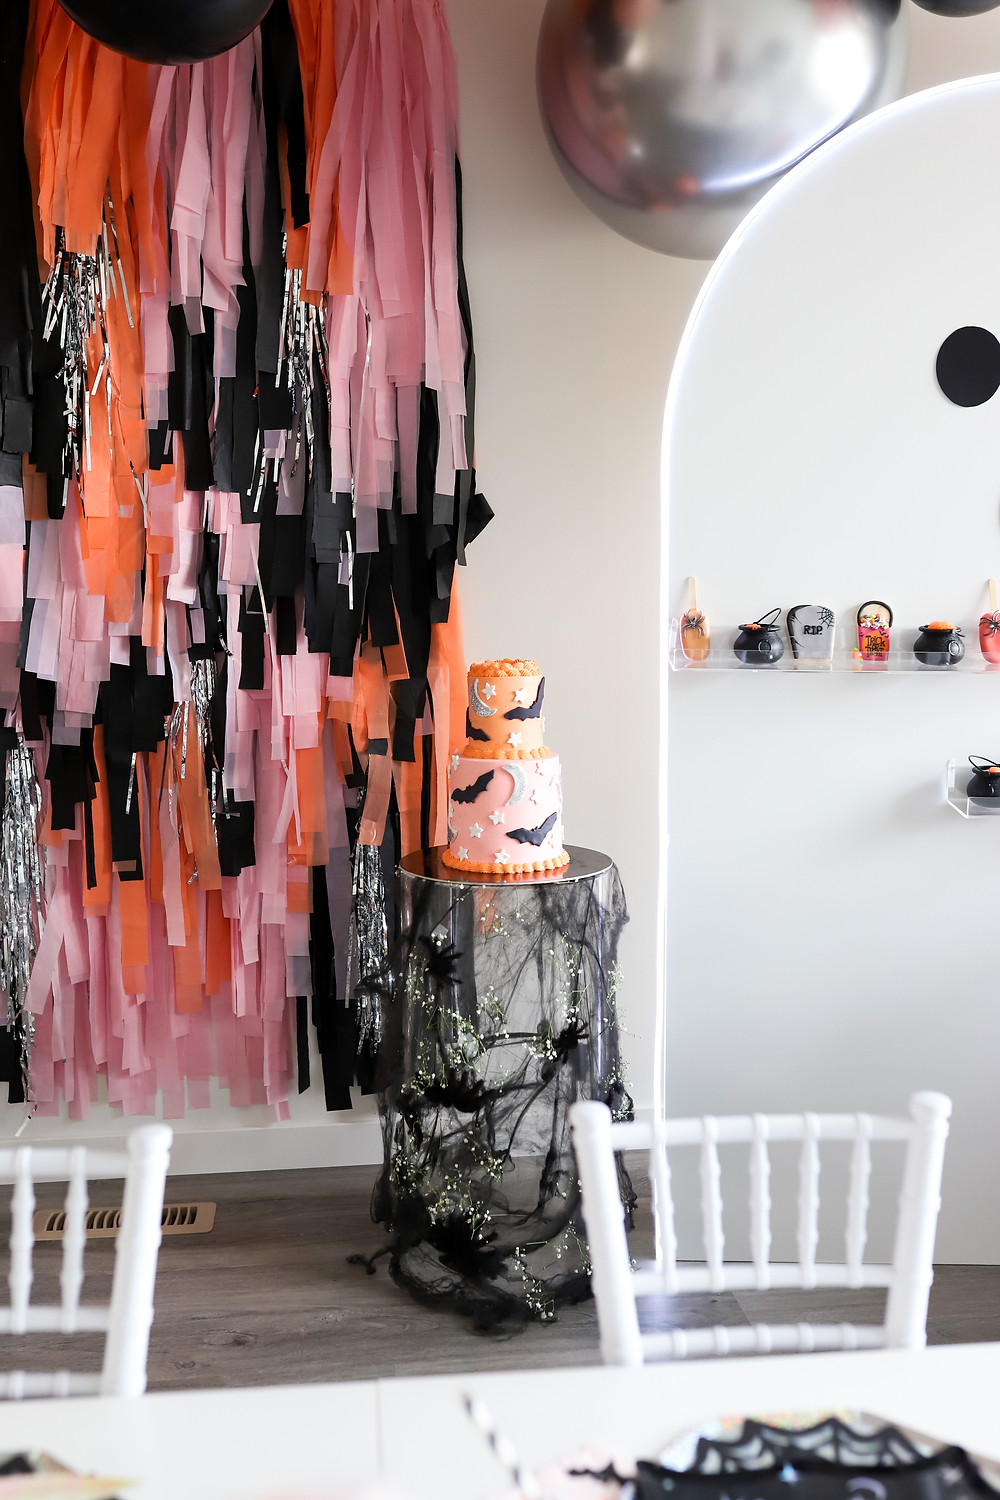 A children's halloween themed party with pink, orange and black streamers hanging on the wall with metallic balloons next to a children's white table covered in spiders and a starry bat themed cake, and a miniature tombstone.